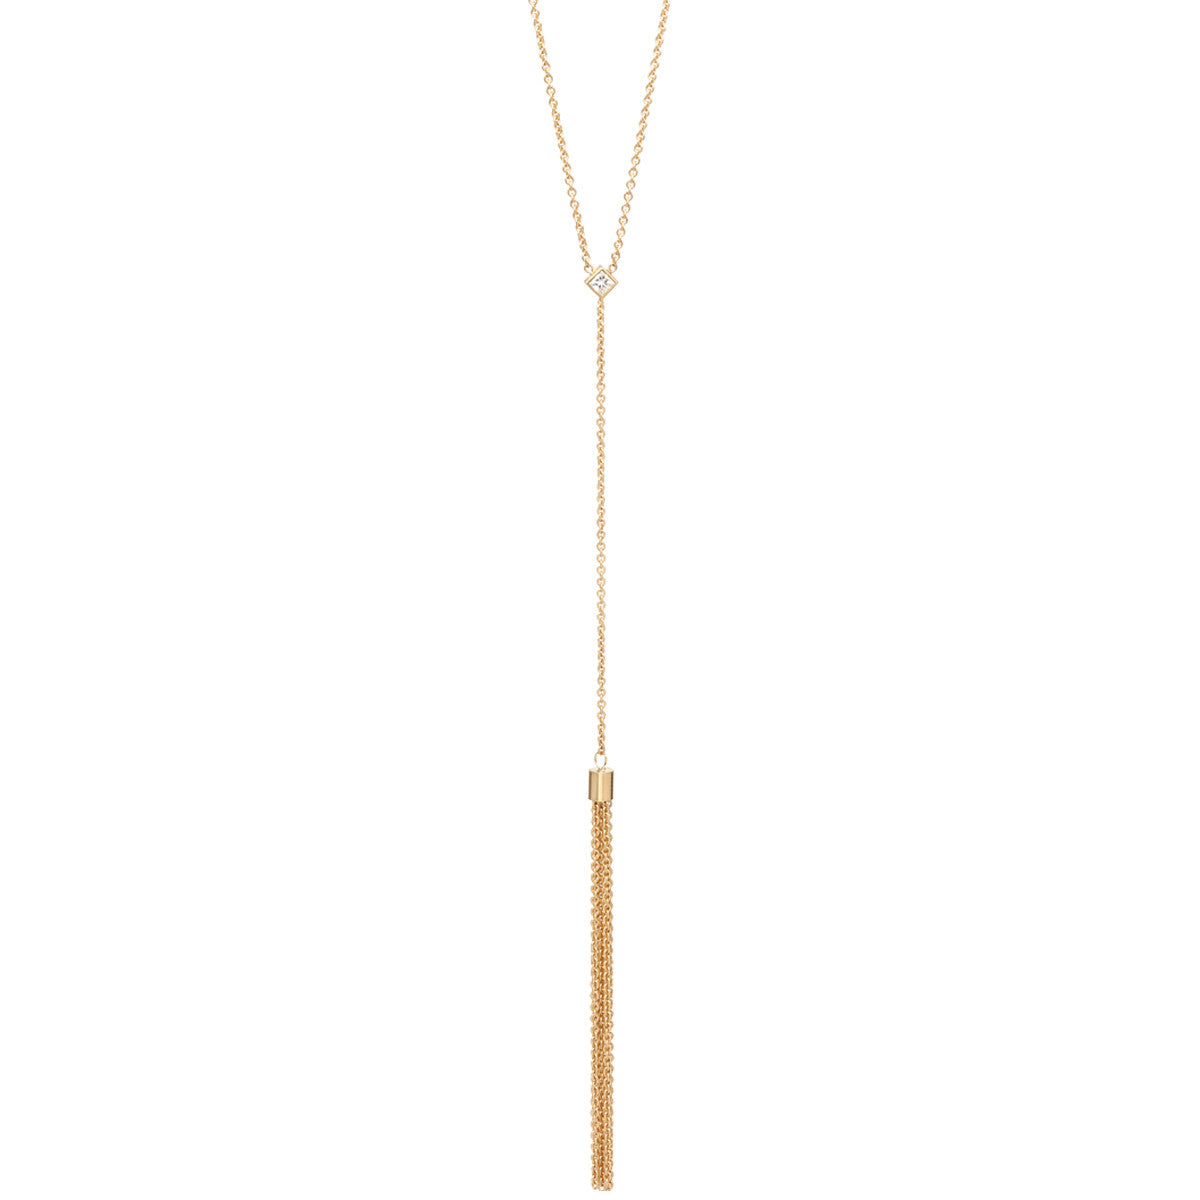 Zoë Chicco 14kt Yellow Gold White Princess Cut Diamond Tassel Necklace